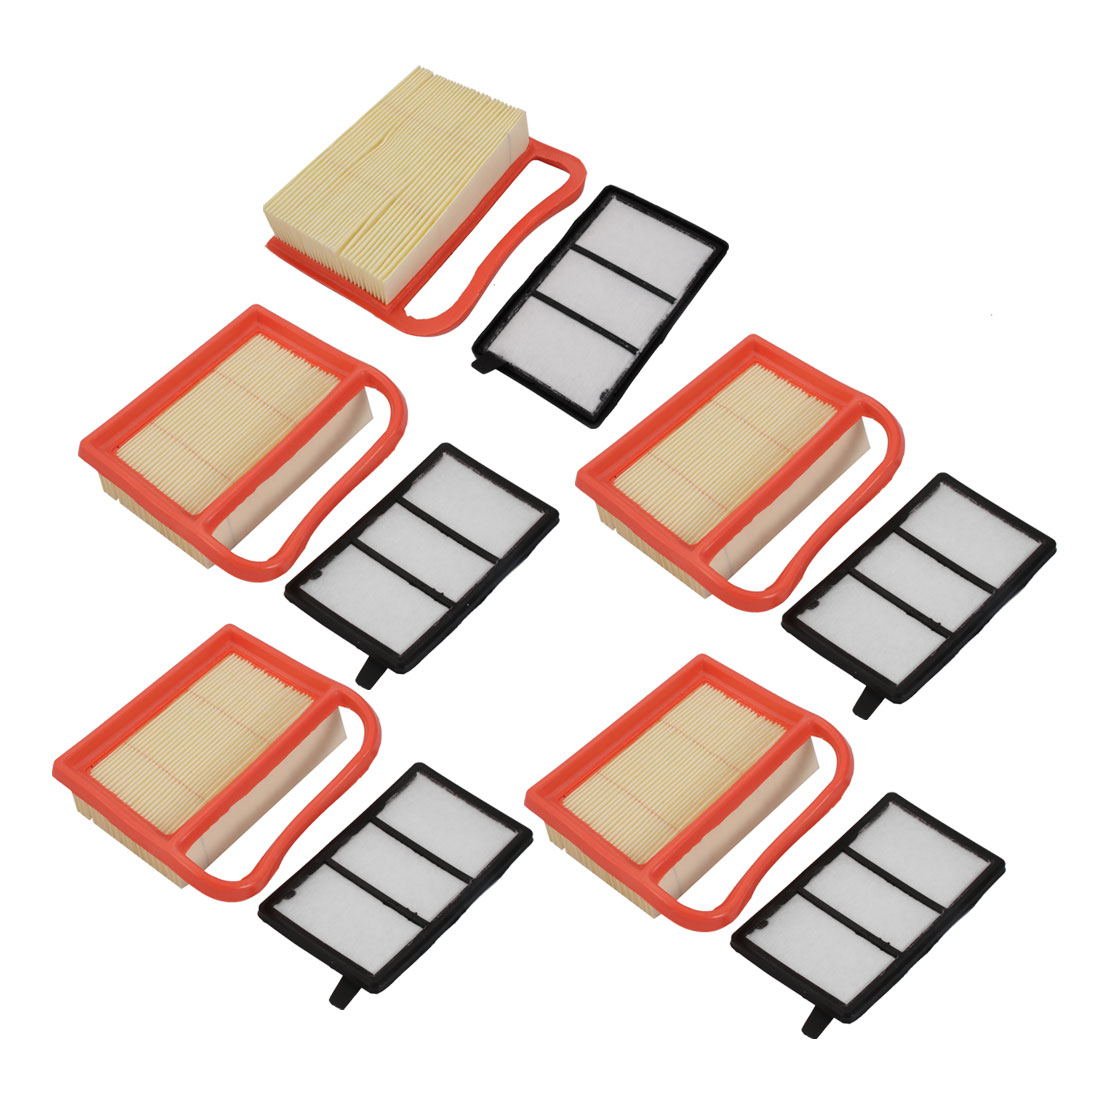 5pcs Replacement Extra Guard Panel Engine TS410 Air Filter Cleaner Accessory